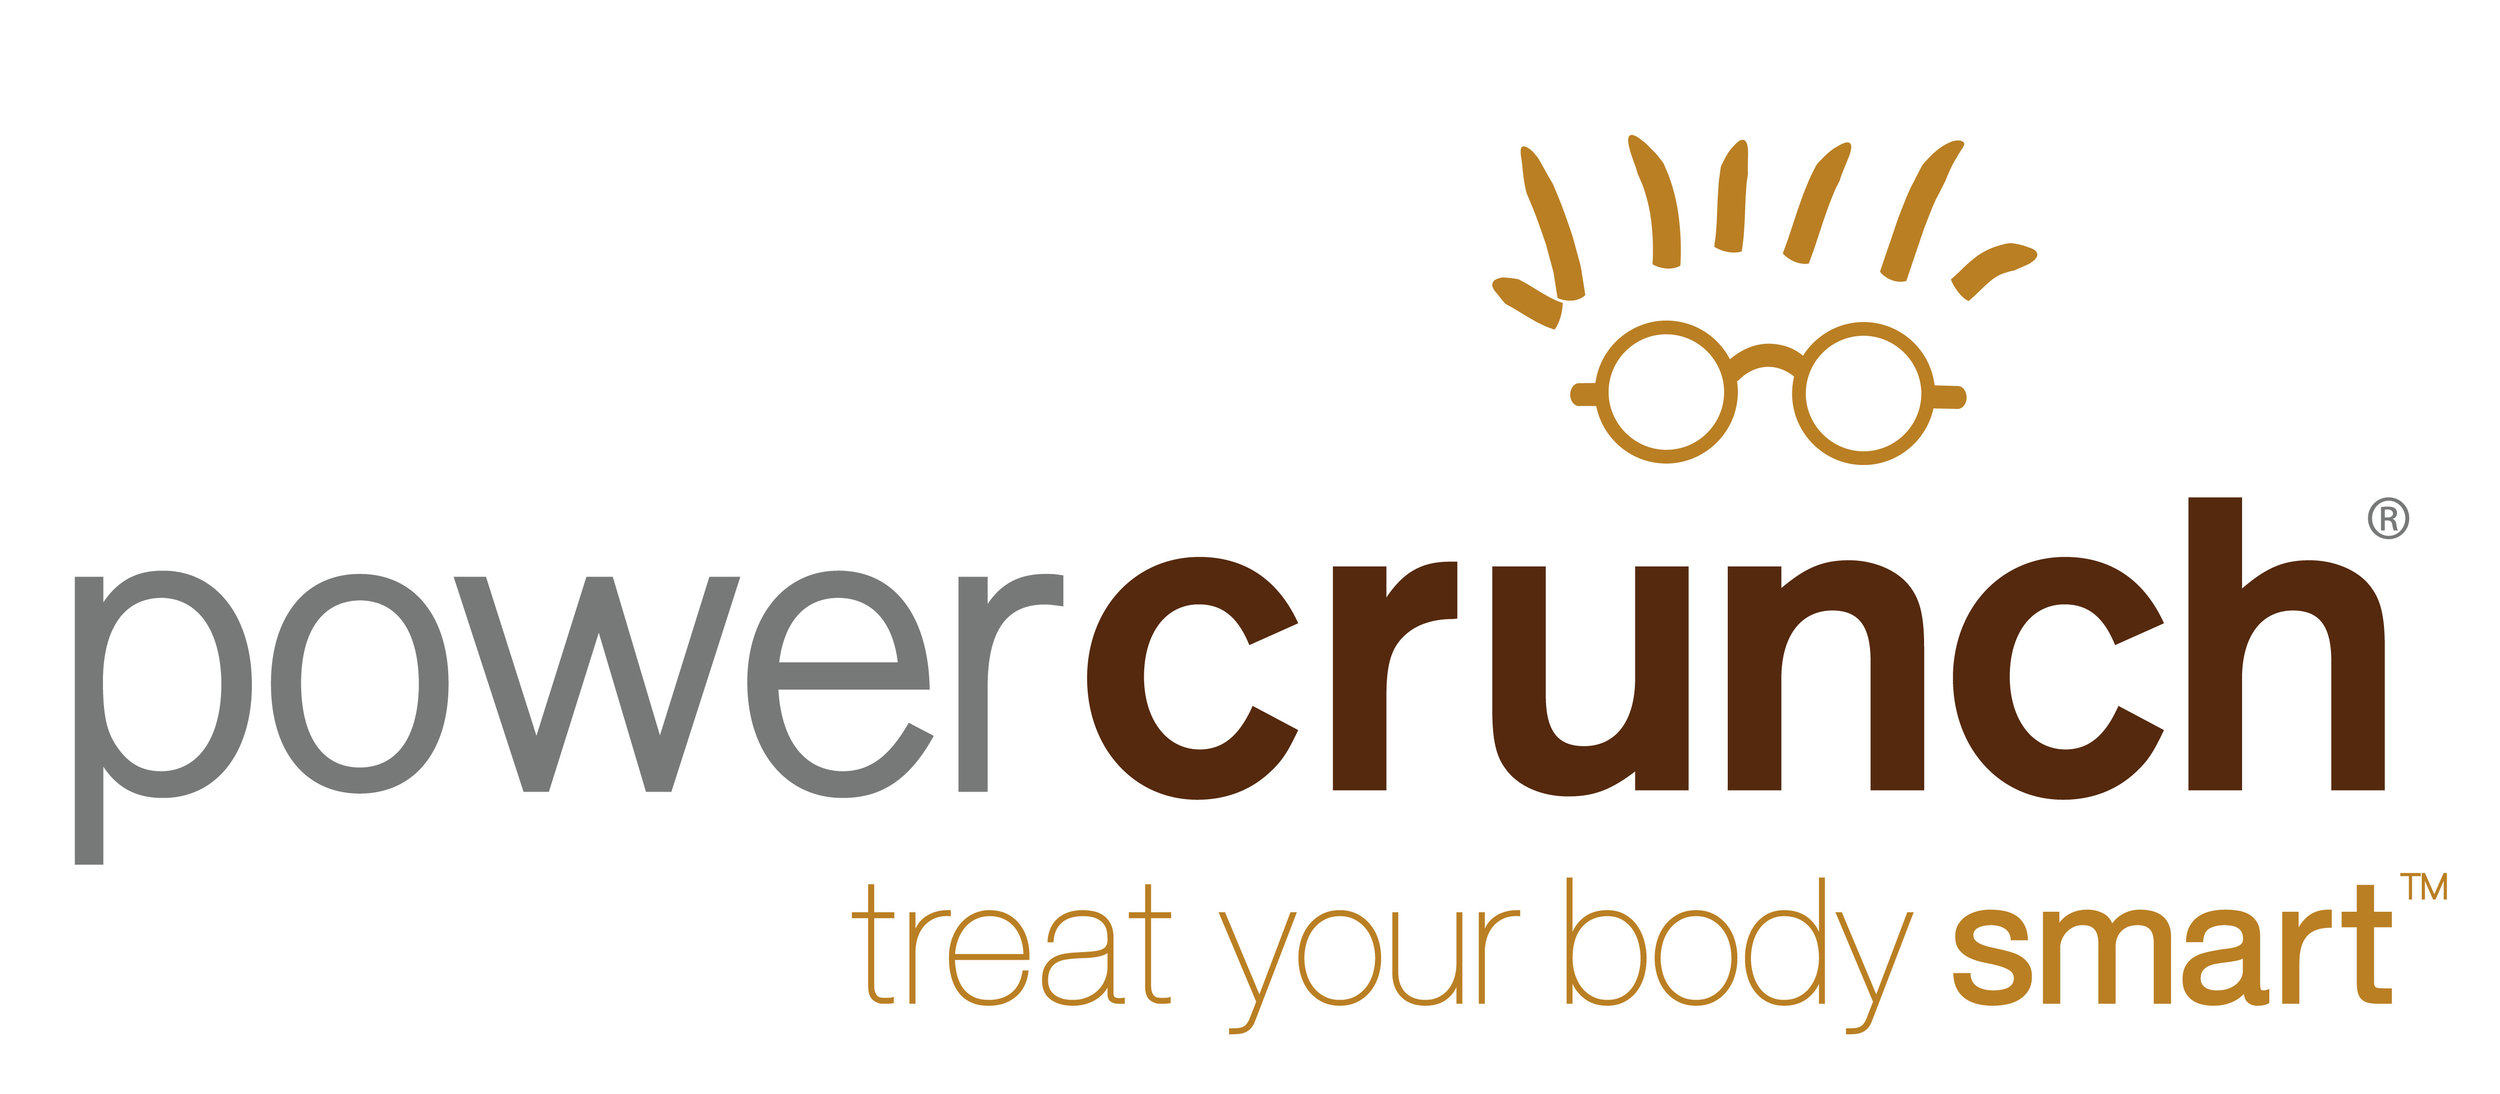 power-crunch-logo.jpg